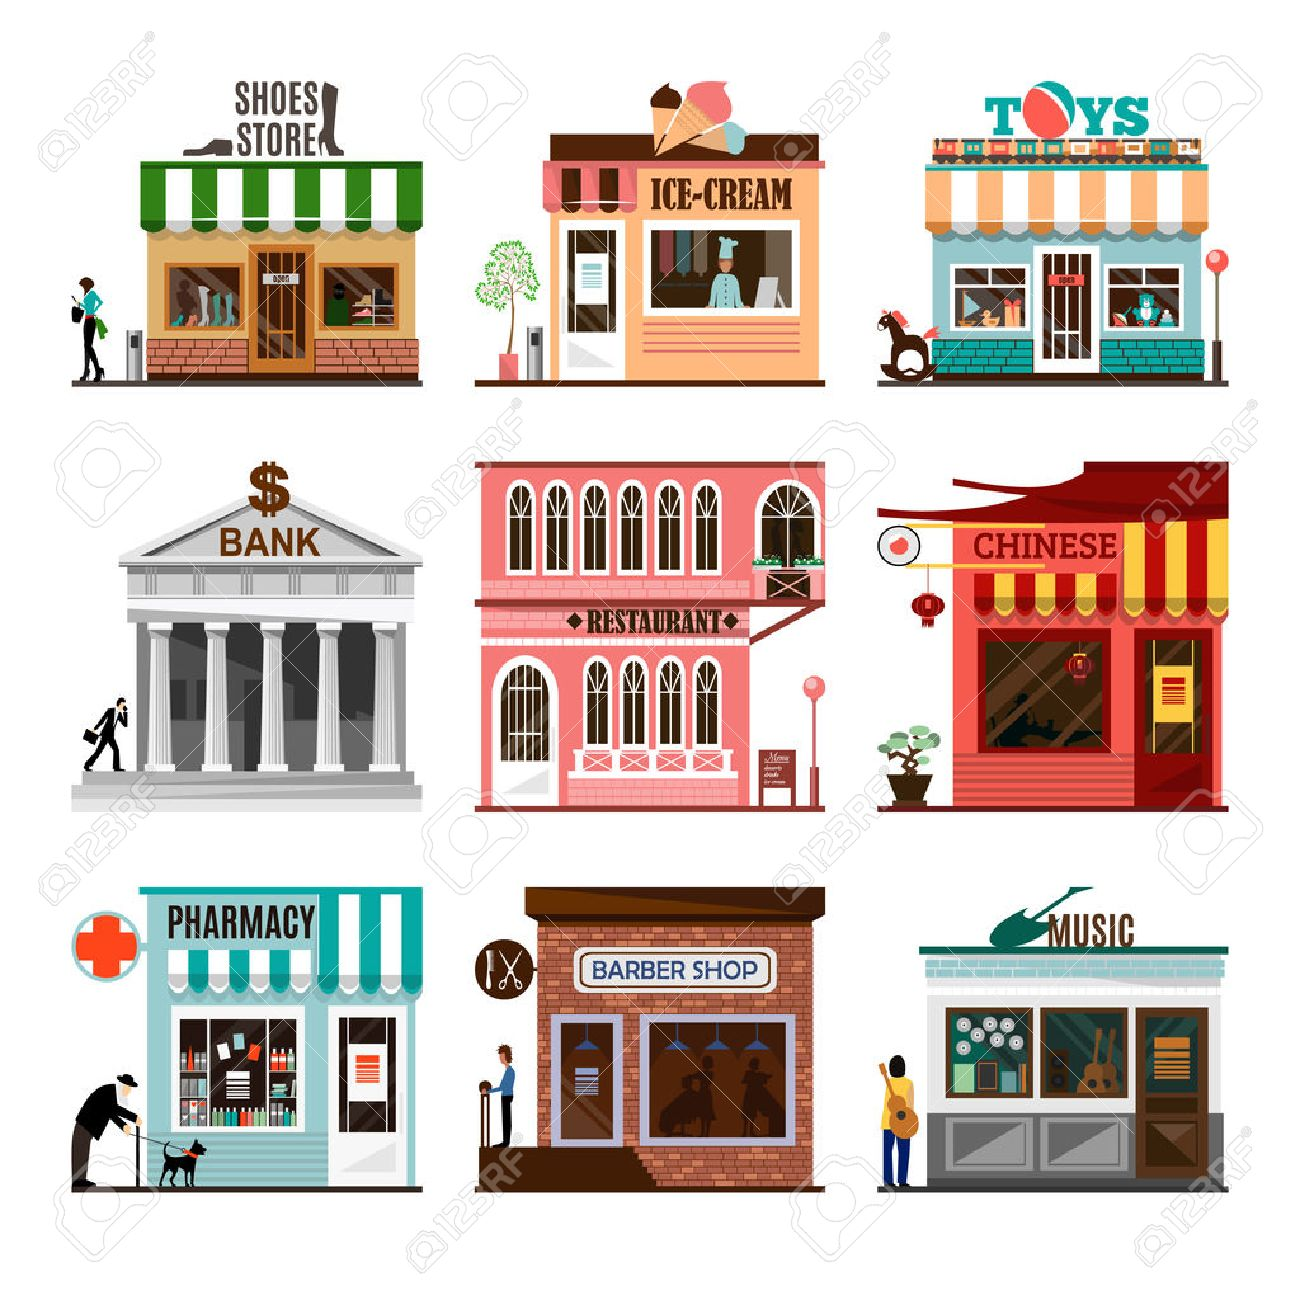 Set of flat shop building facades icons. Vector illustration local market store design. Street restaurant, retail, shoes stall, ice cream, toys game, bank, chinese, pharmacy, barber, music. App sign - 55726070